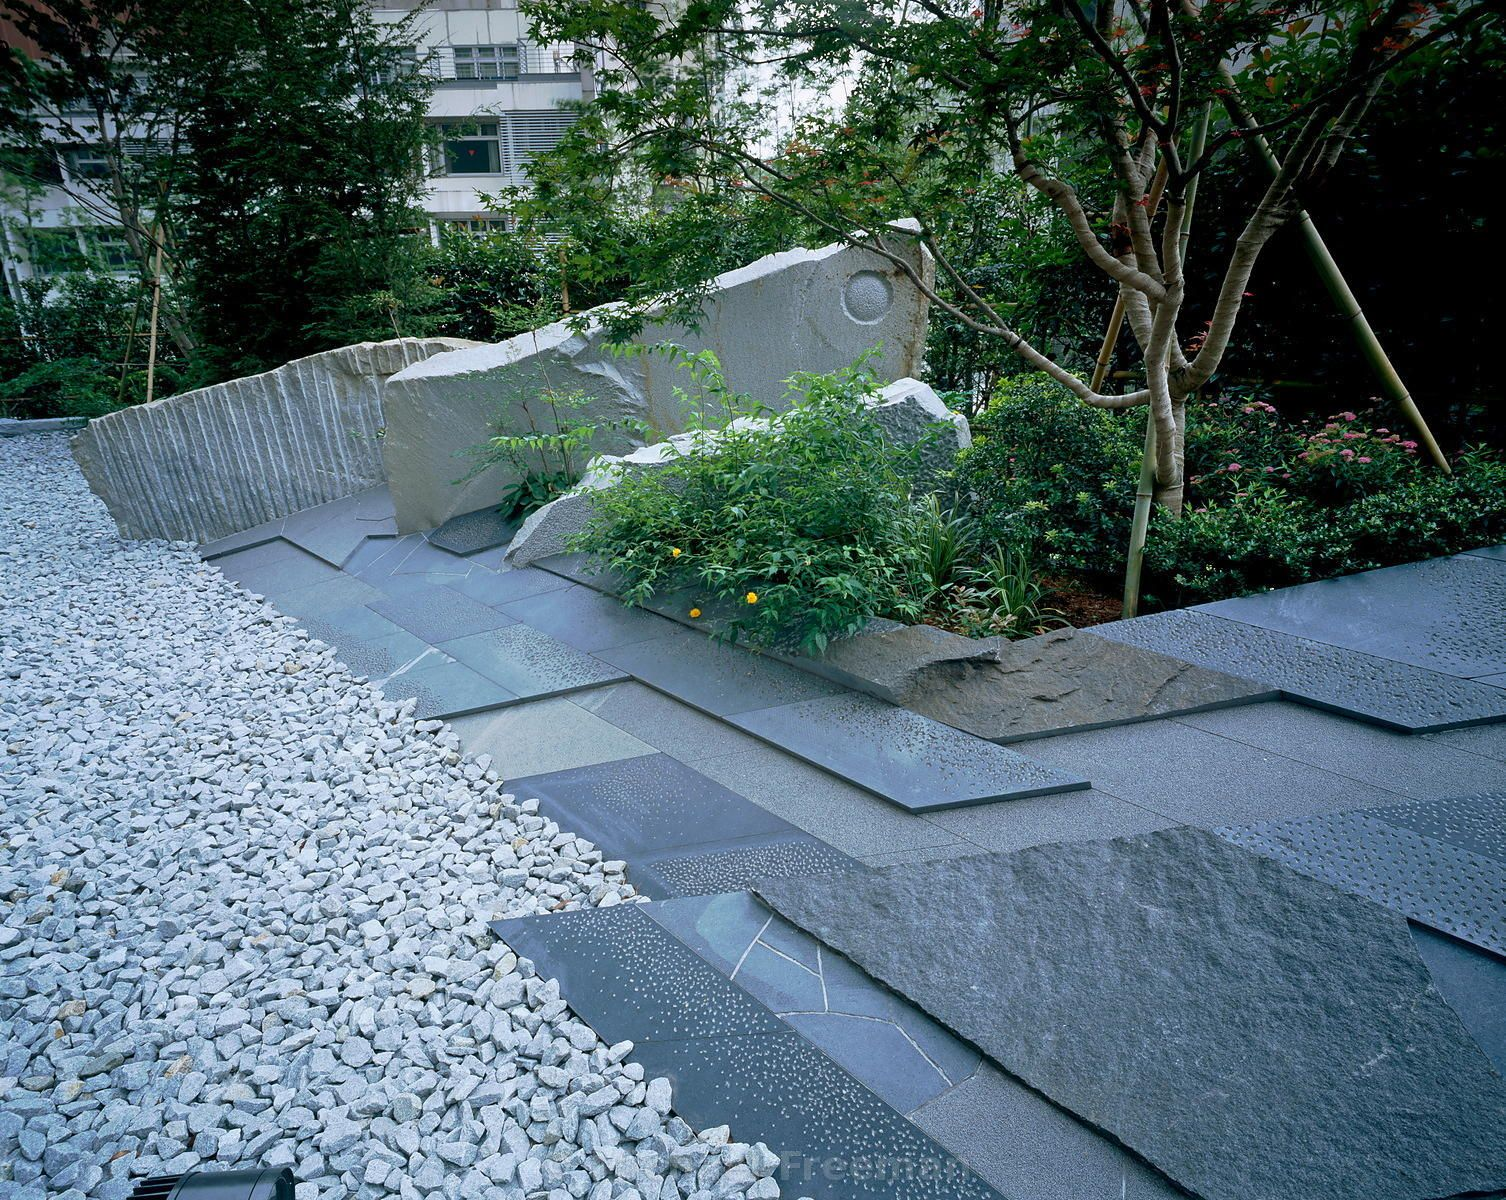 Garden Paving U2013 Contemporary Japanese Style Garden With Blue Slate Paving  And Gravel